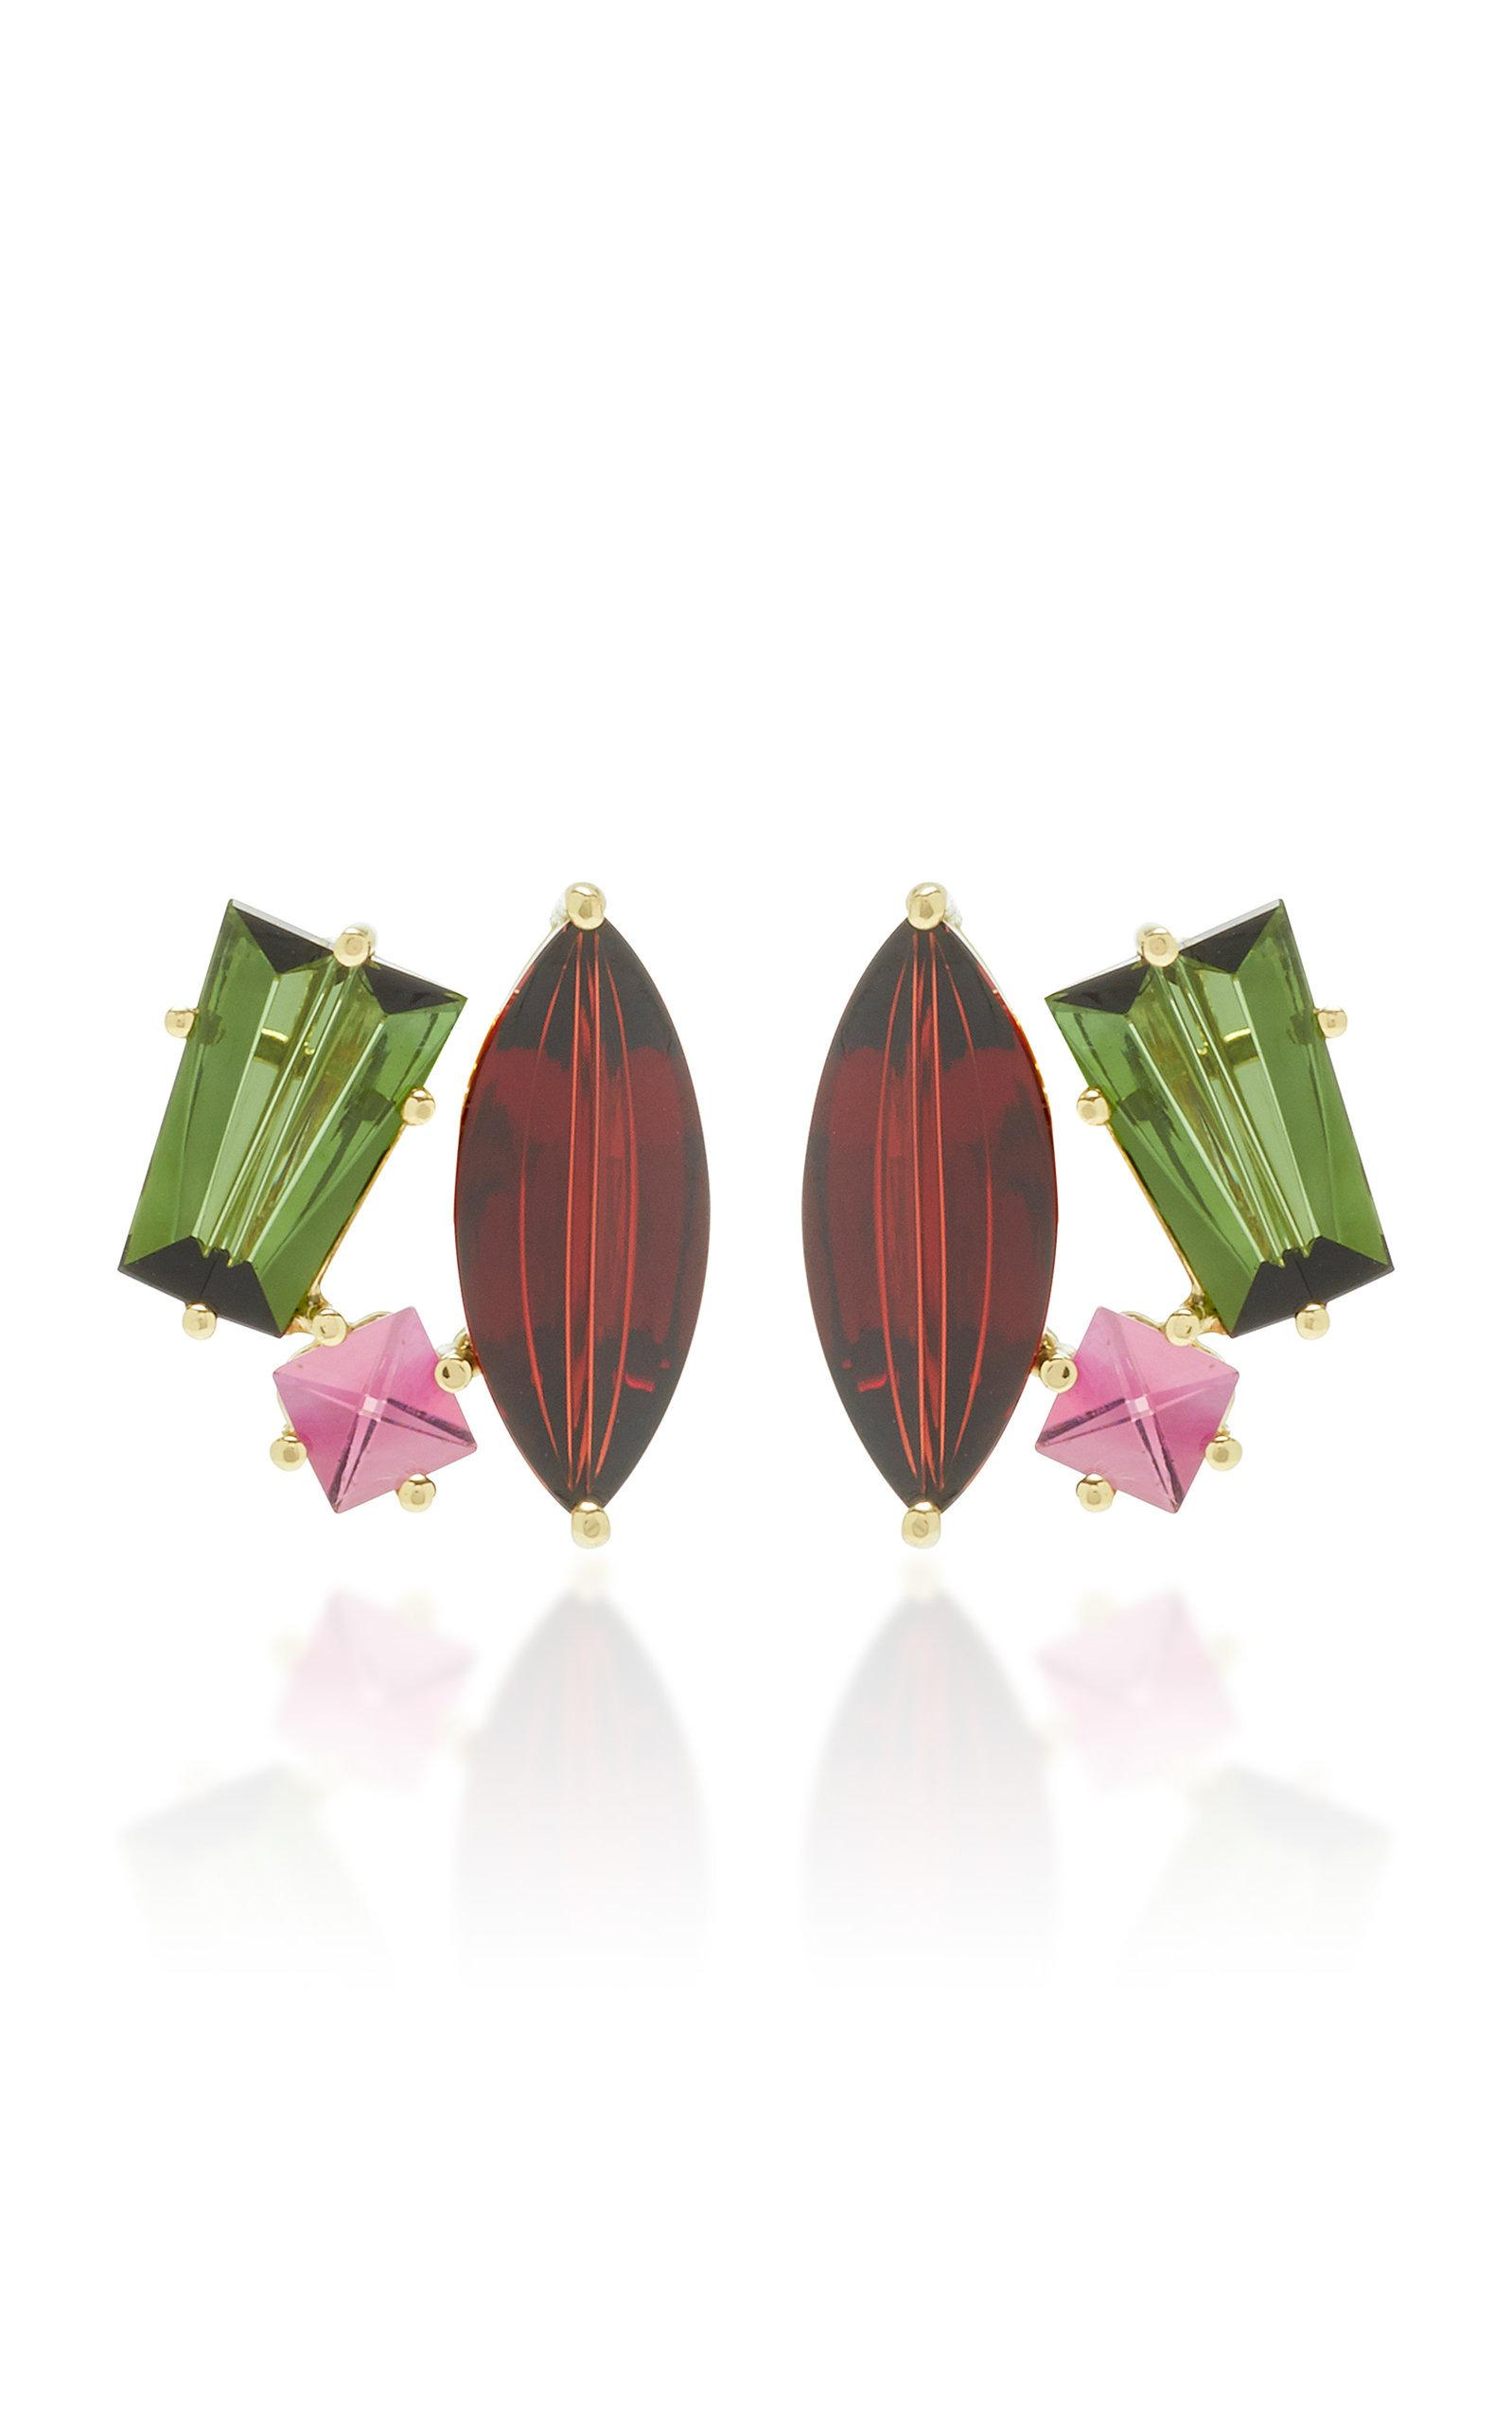 Misui One-of-a-kind 18k Gold And Multi-stone Earrings In Green